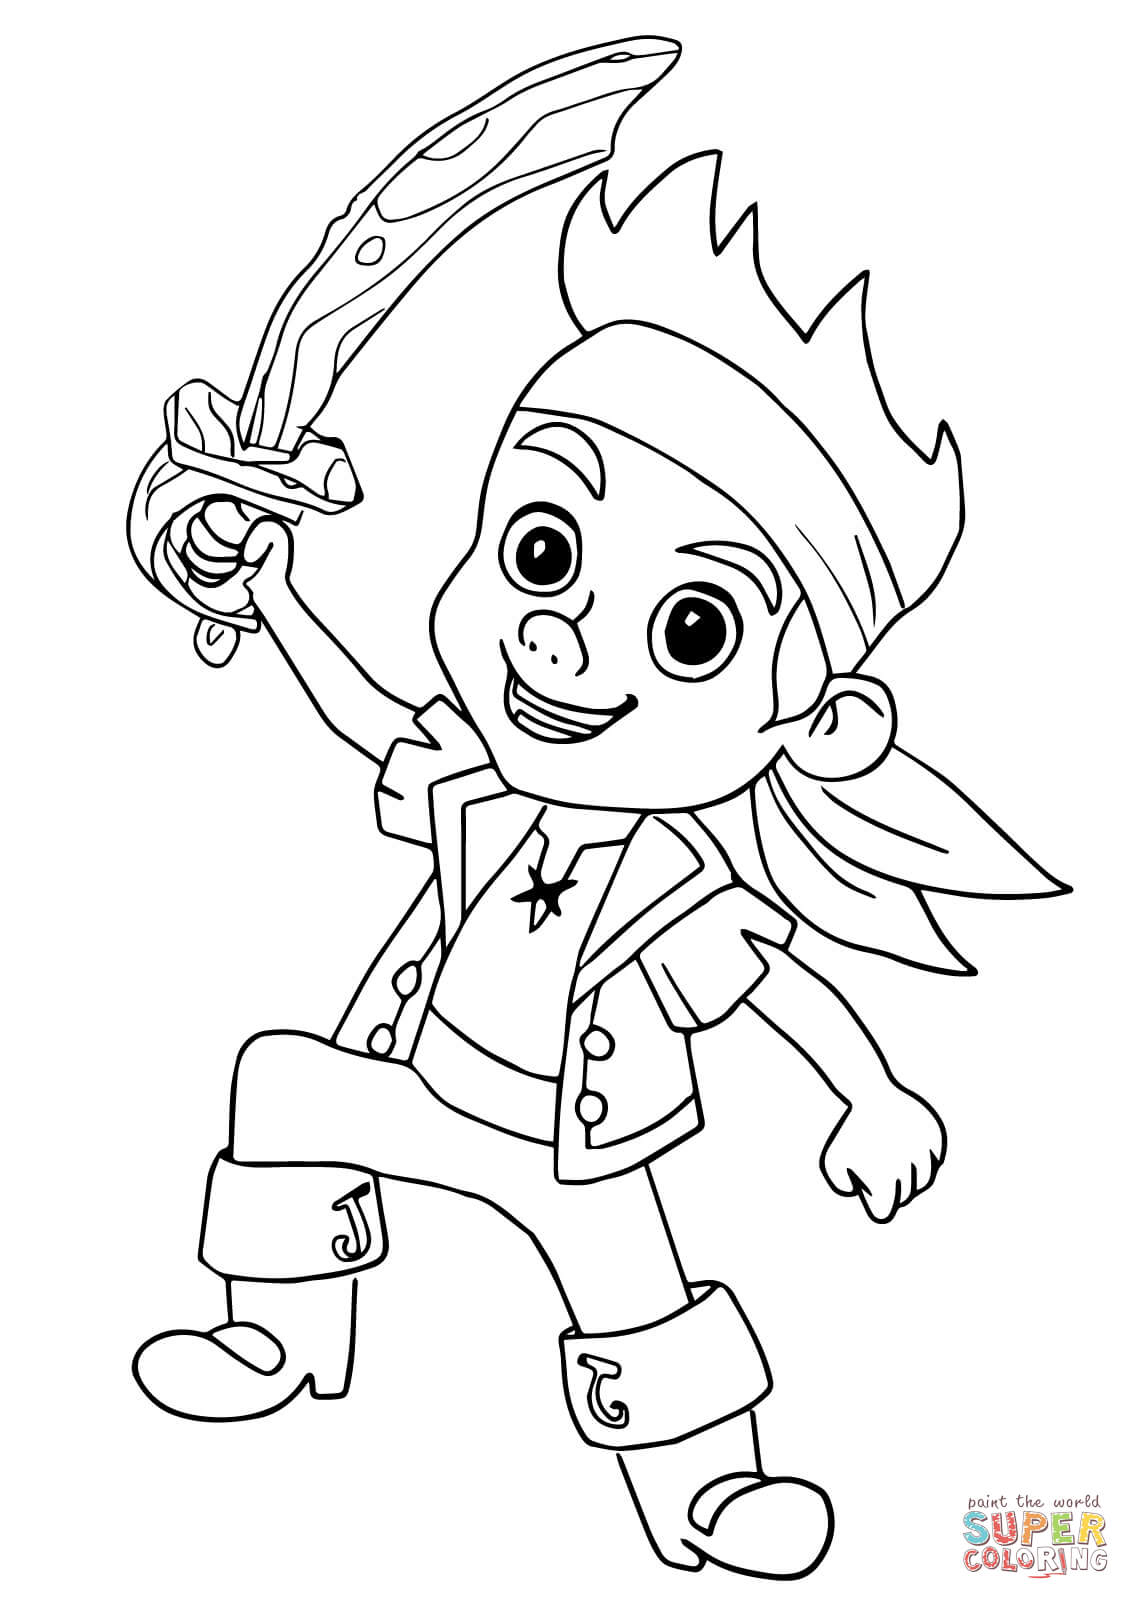 jake and the neverland pirates coloring page jake and the never land pirates coloring pages free the neverland pirates jake and coloring page